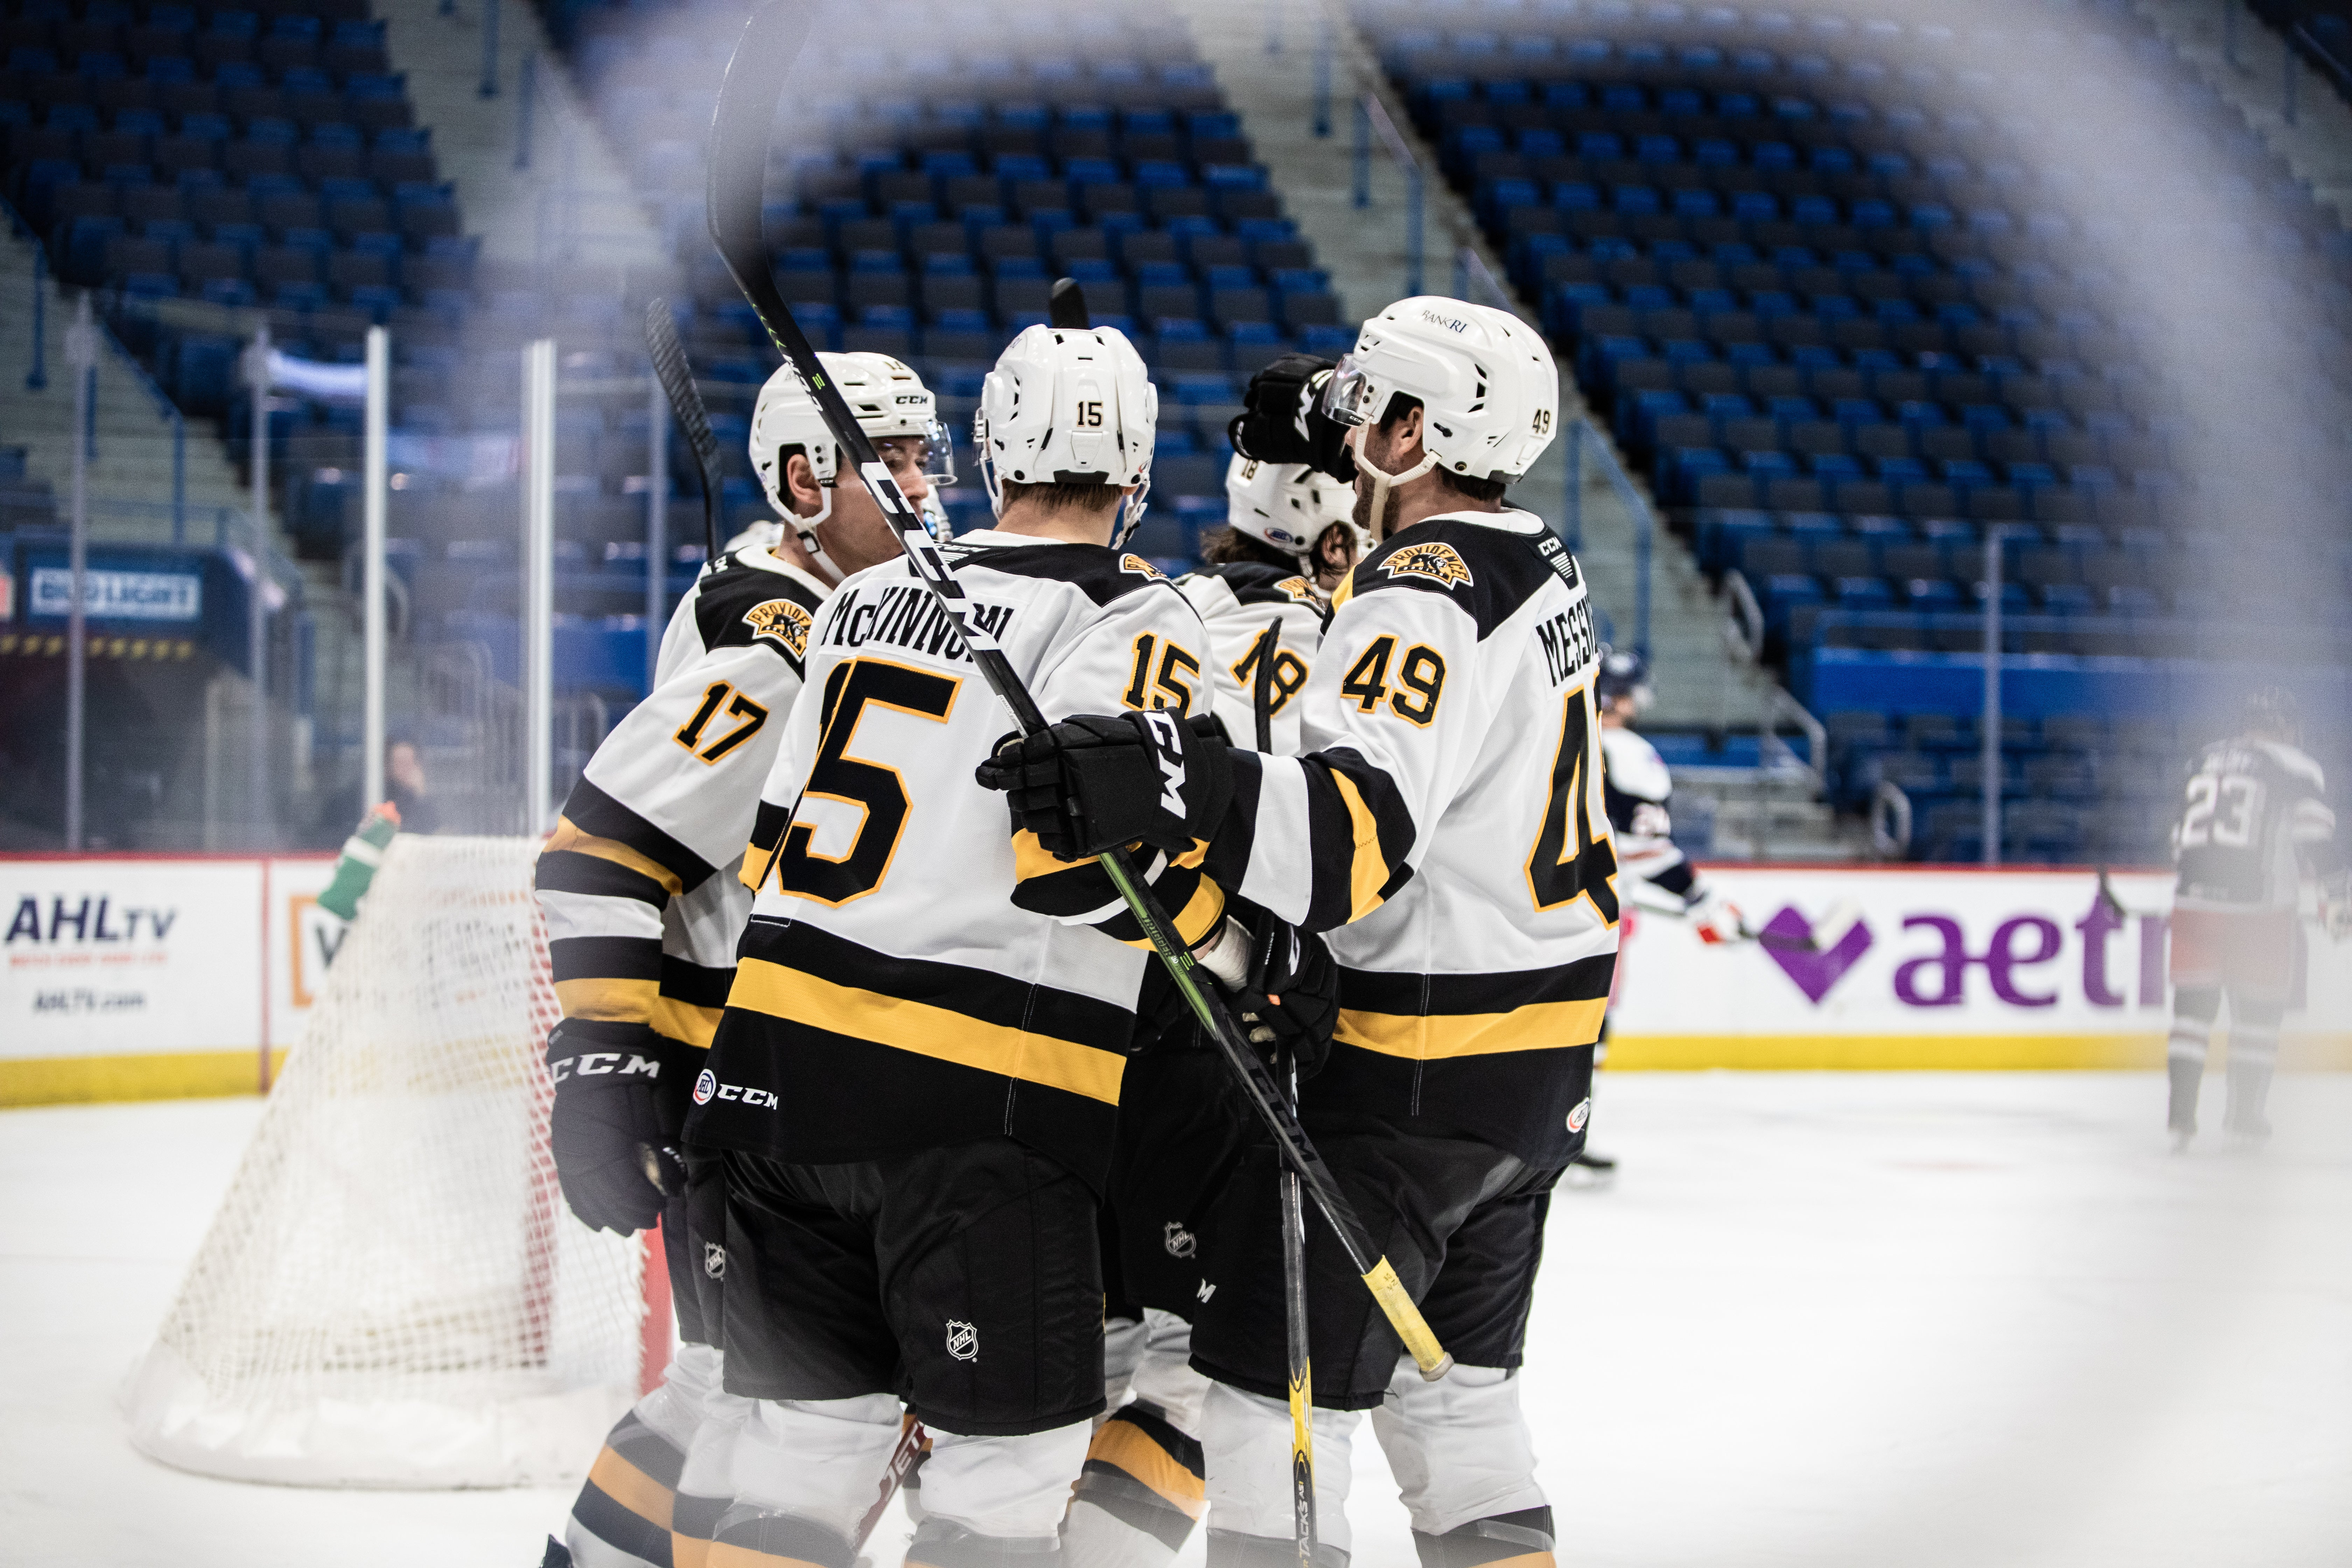 P-BRUINS CONTINUE TO LEAD DIVISION, DEFEAT HARTFORD WOLF PACK, 6-1